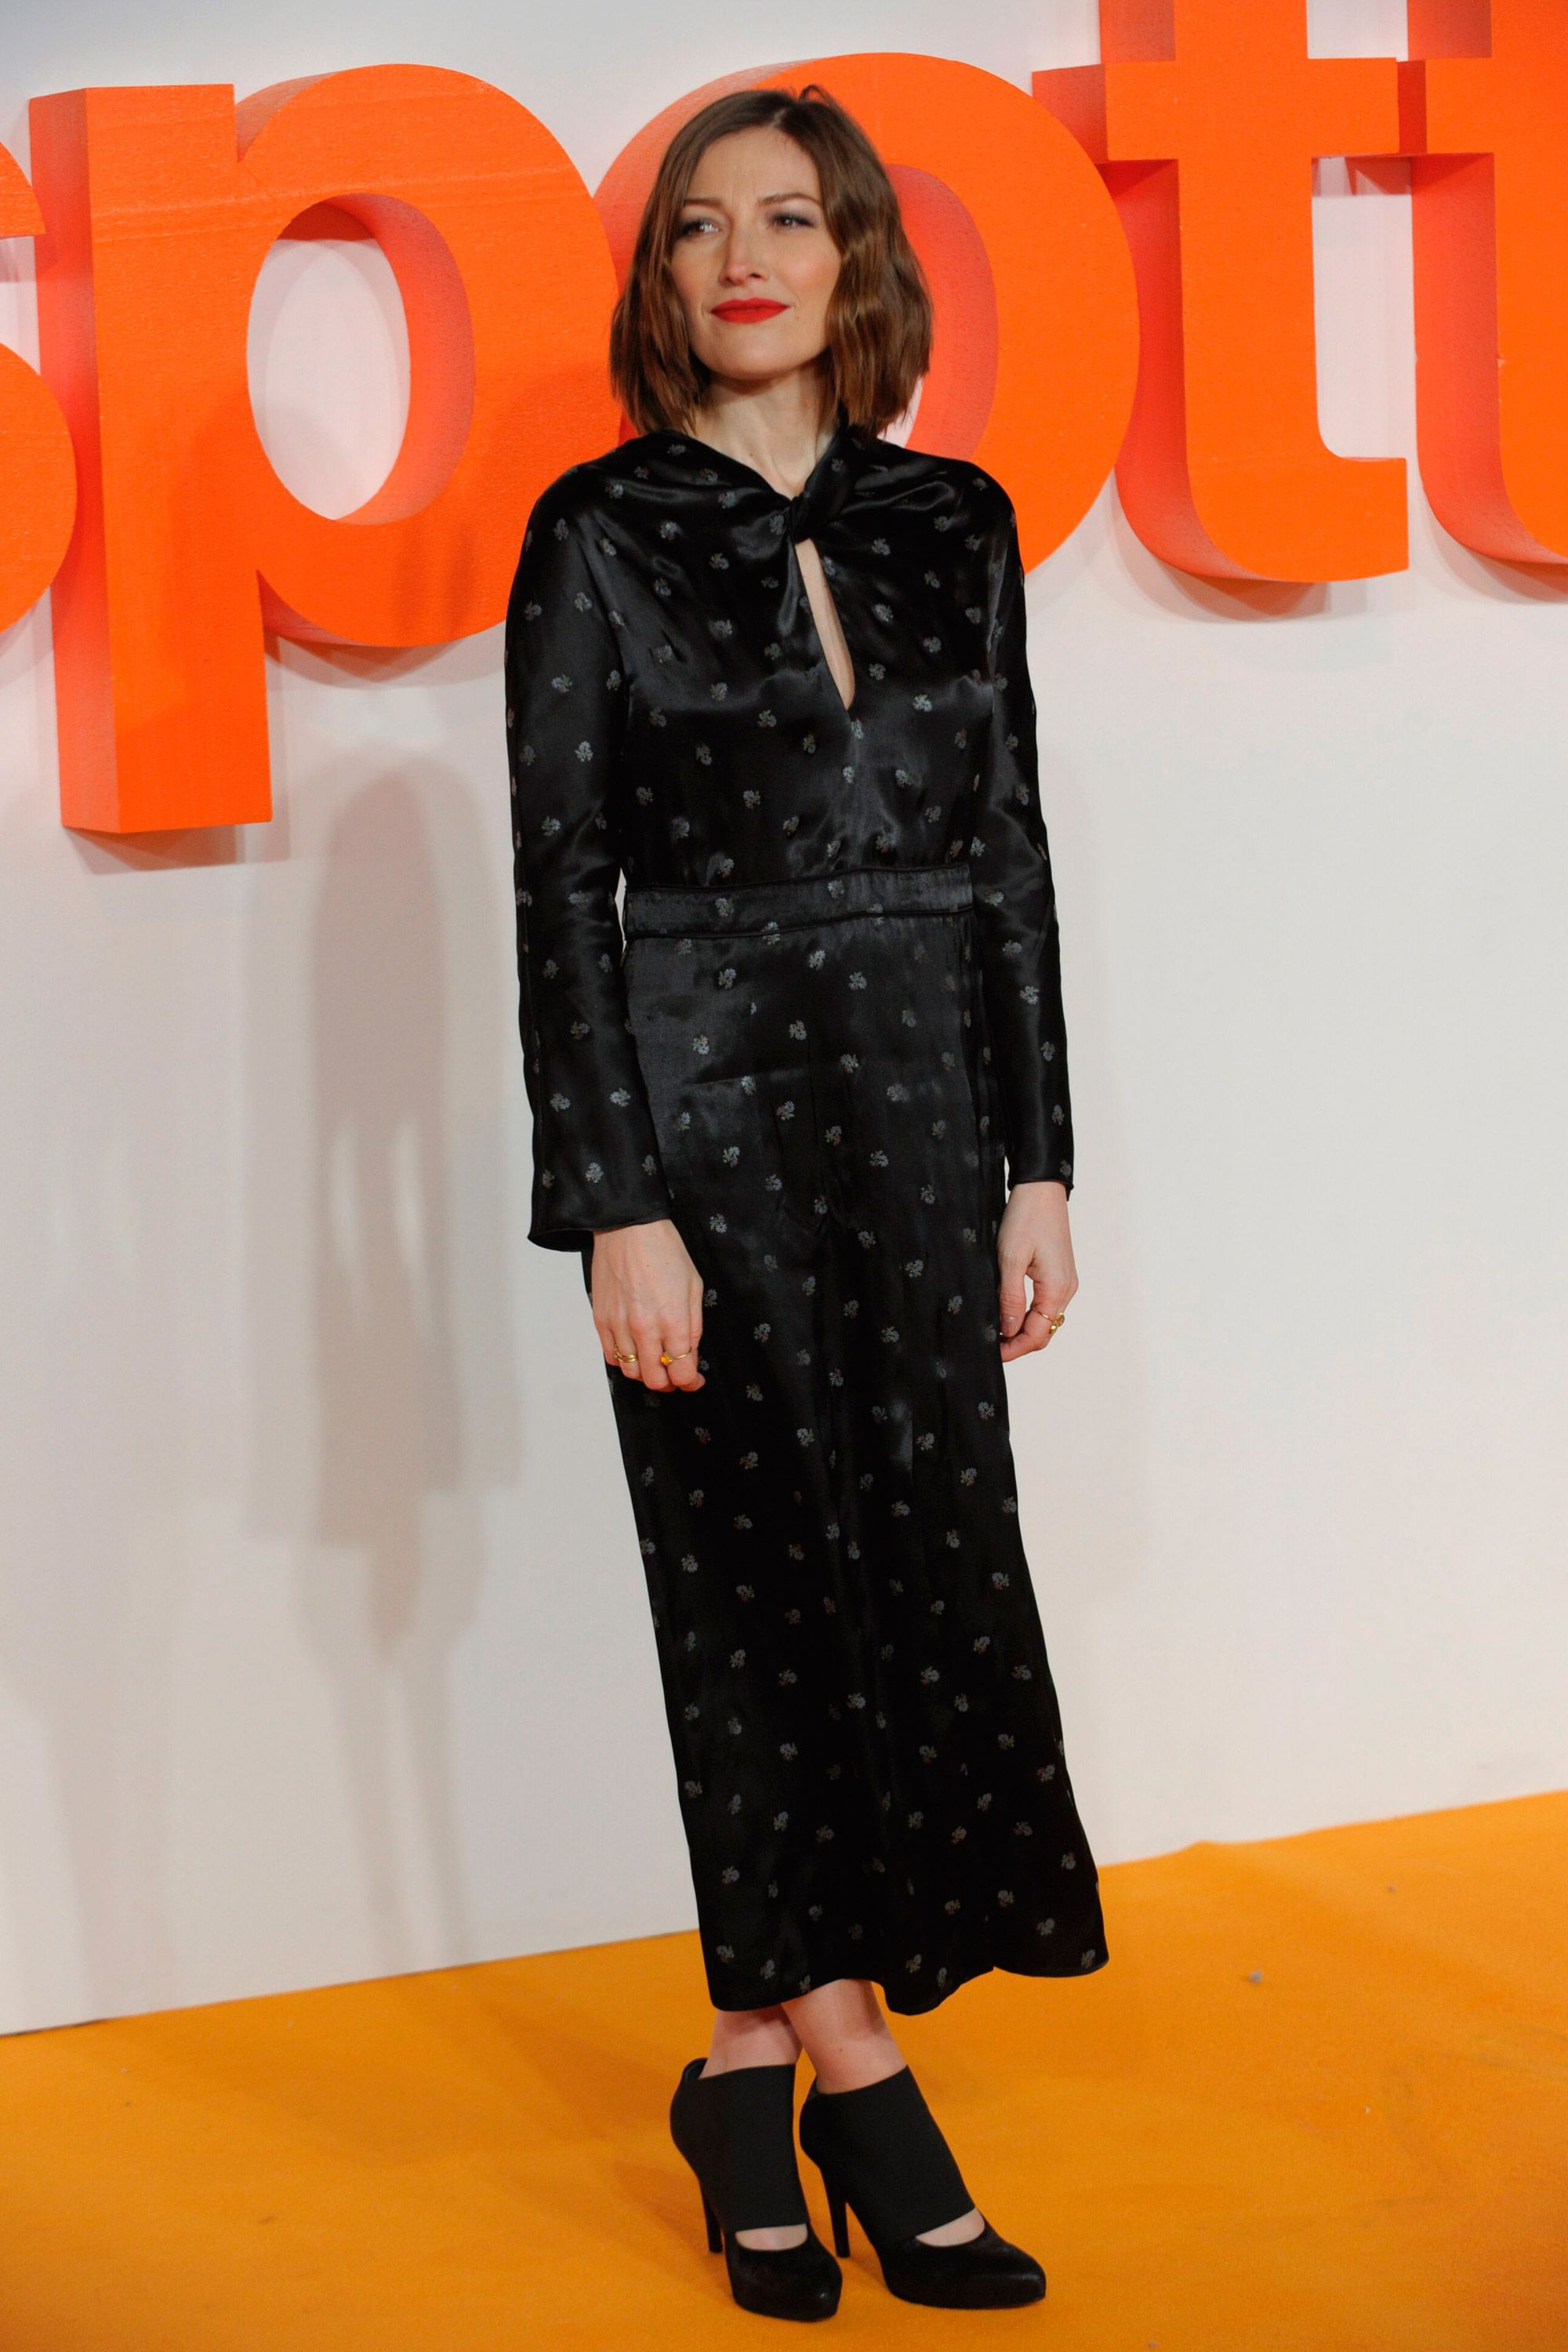 best dressed, celebrity style, A-list style